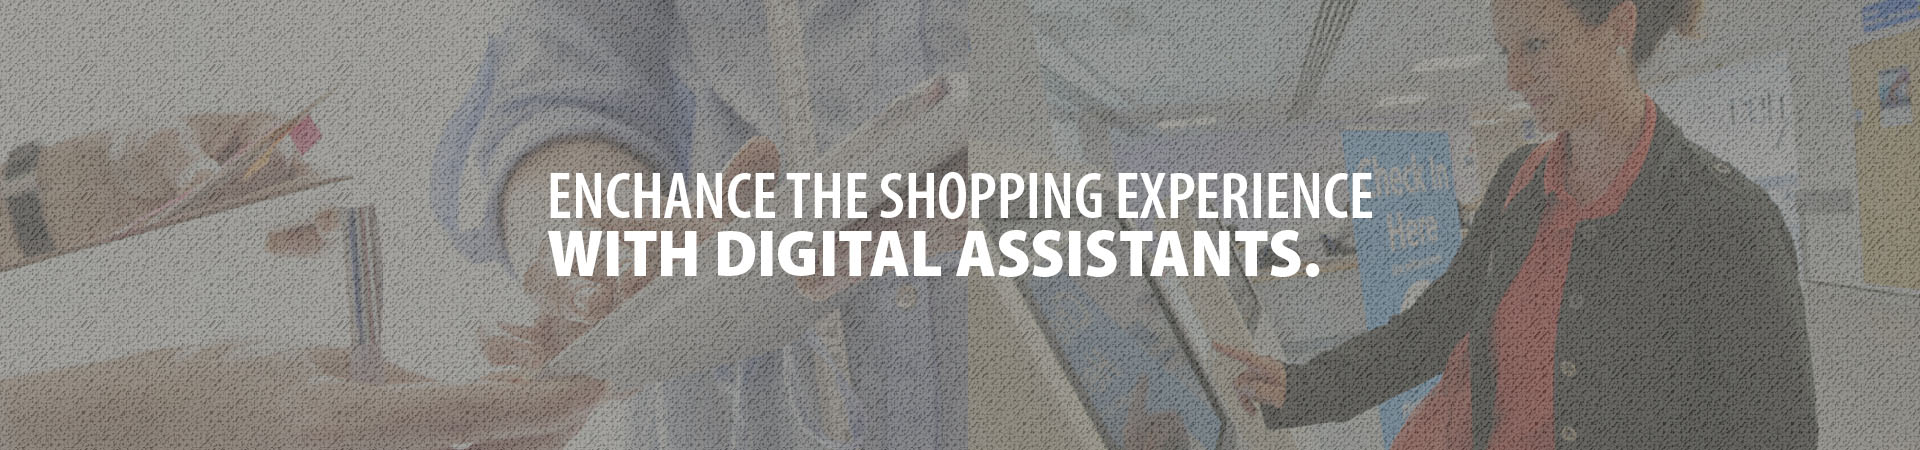 Enhance the shopping experience with digital assistants.